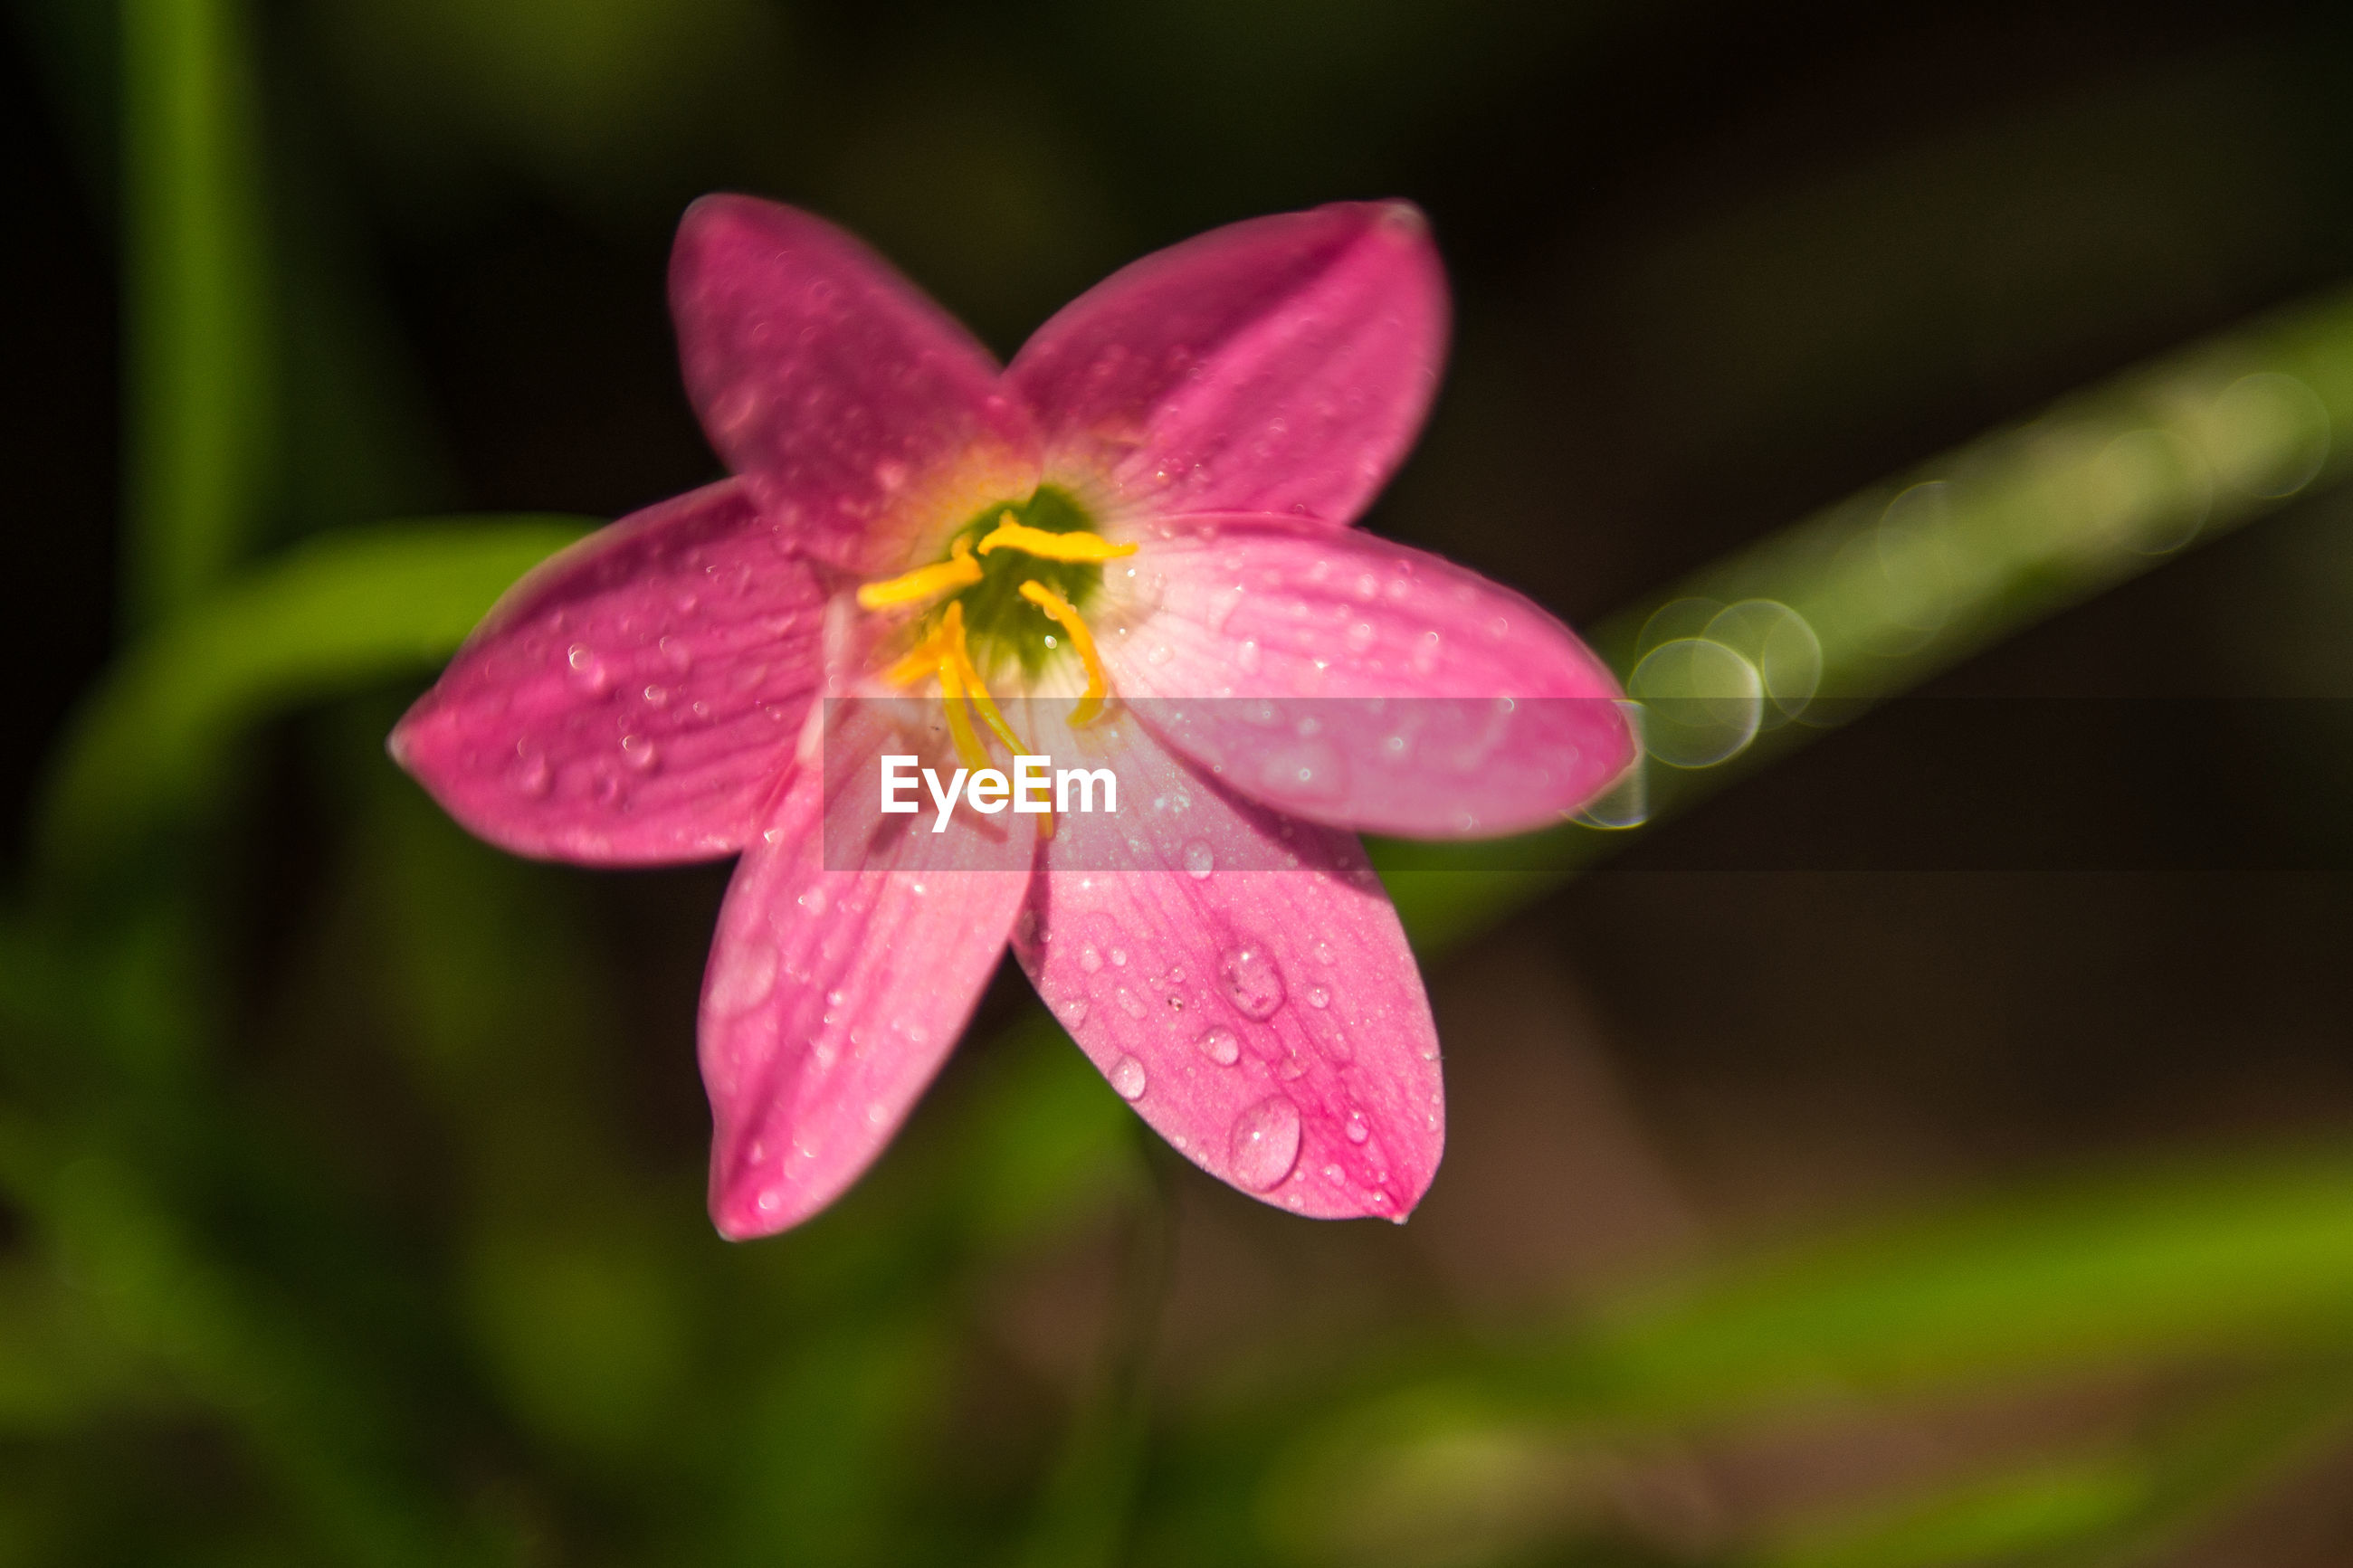 CLOSE-UP OF PINK FLOWER WITH WATER DROPS ON PLANT